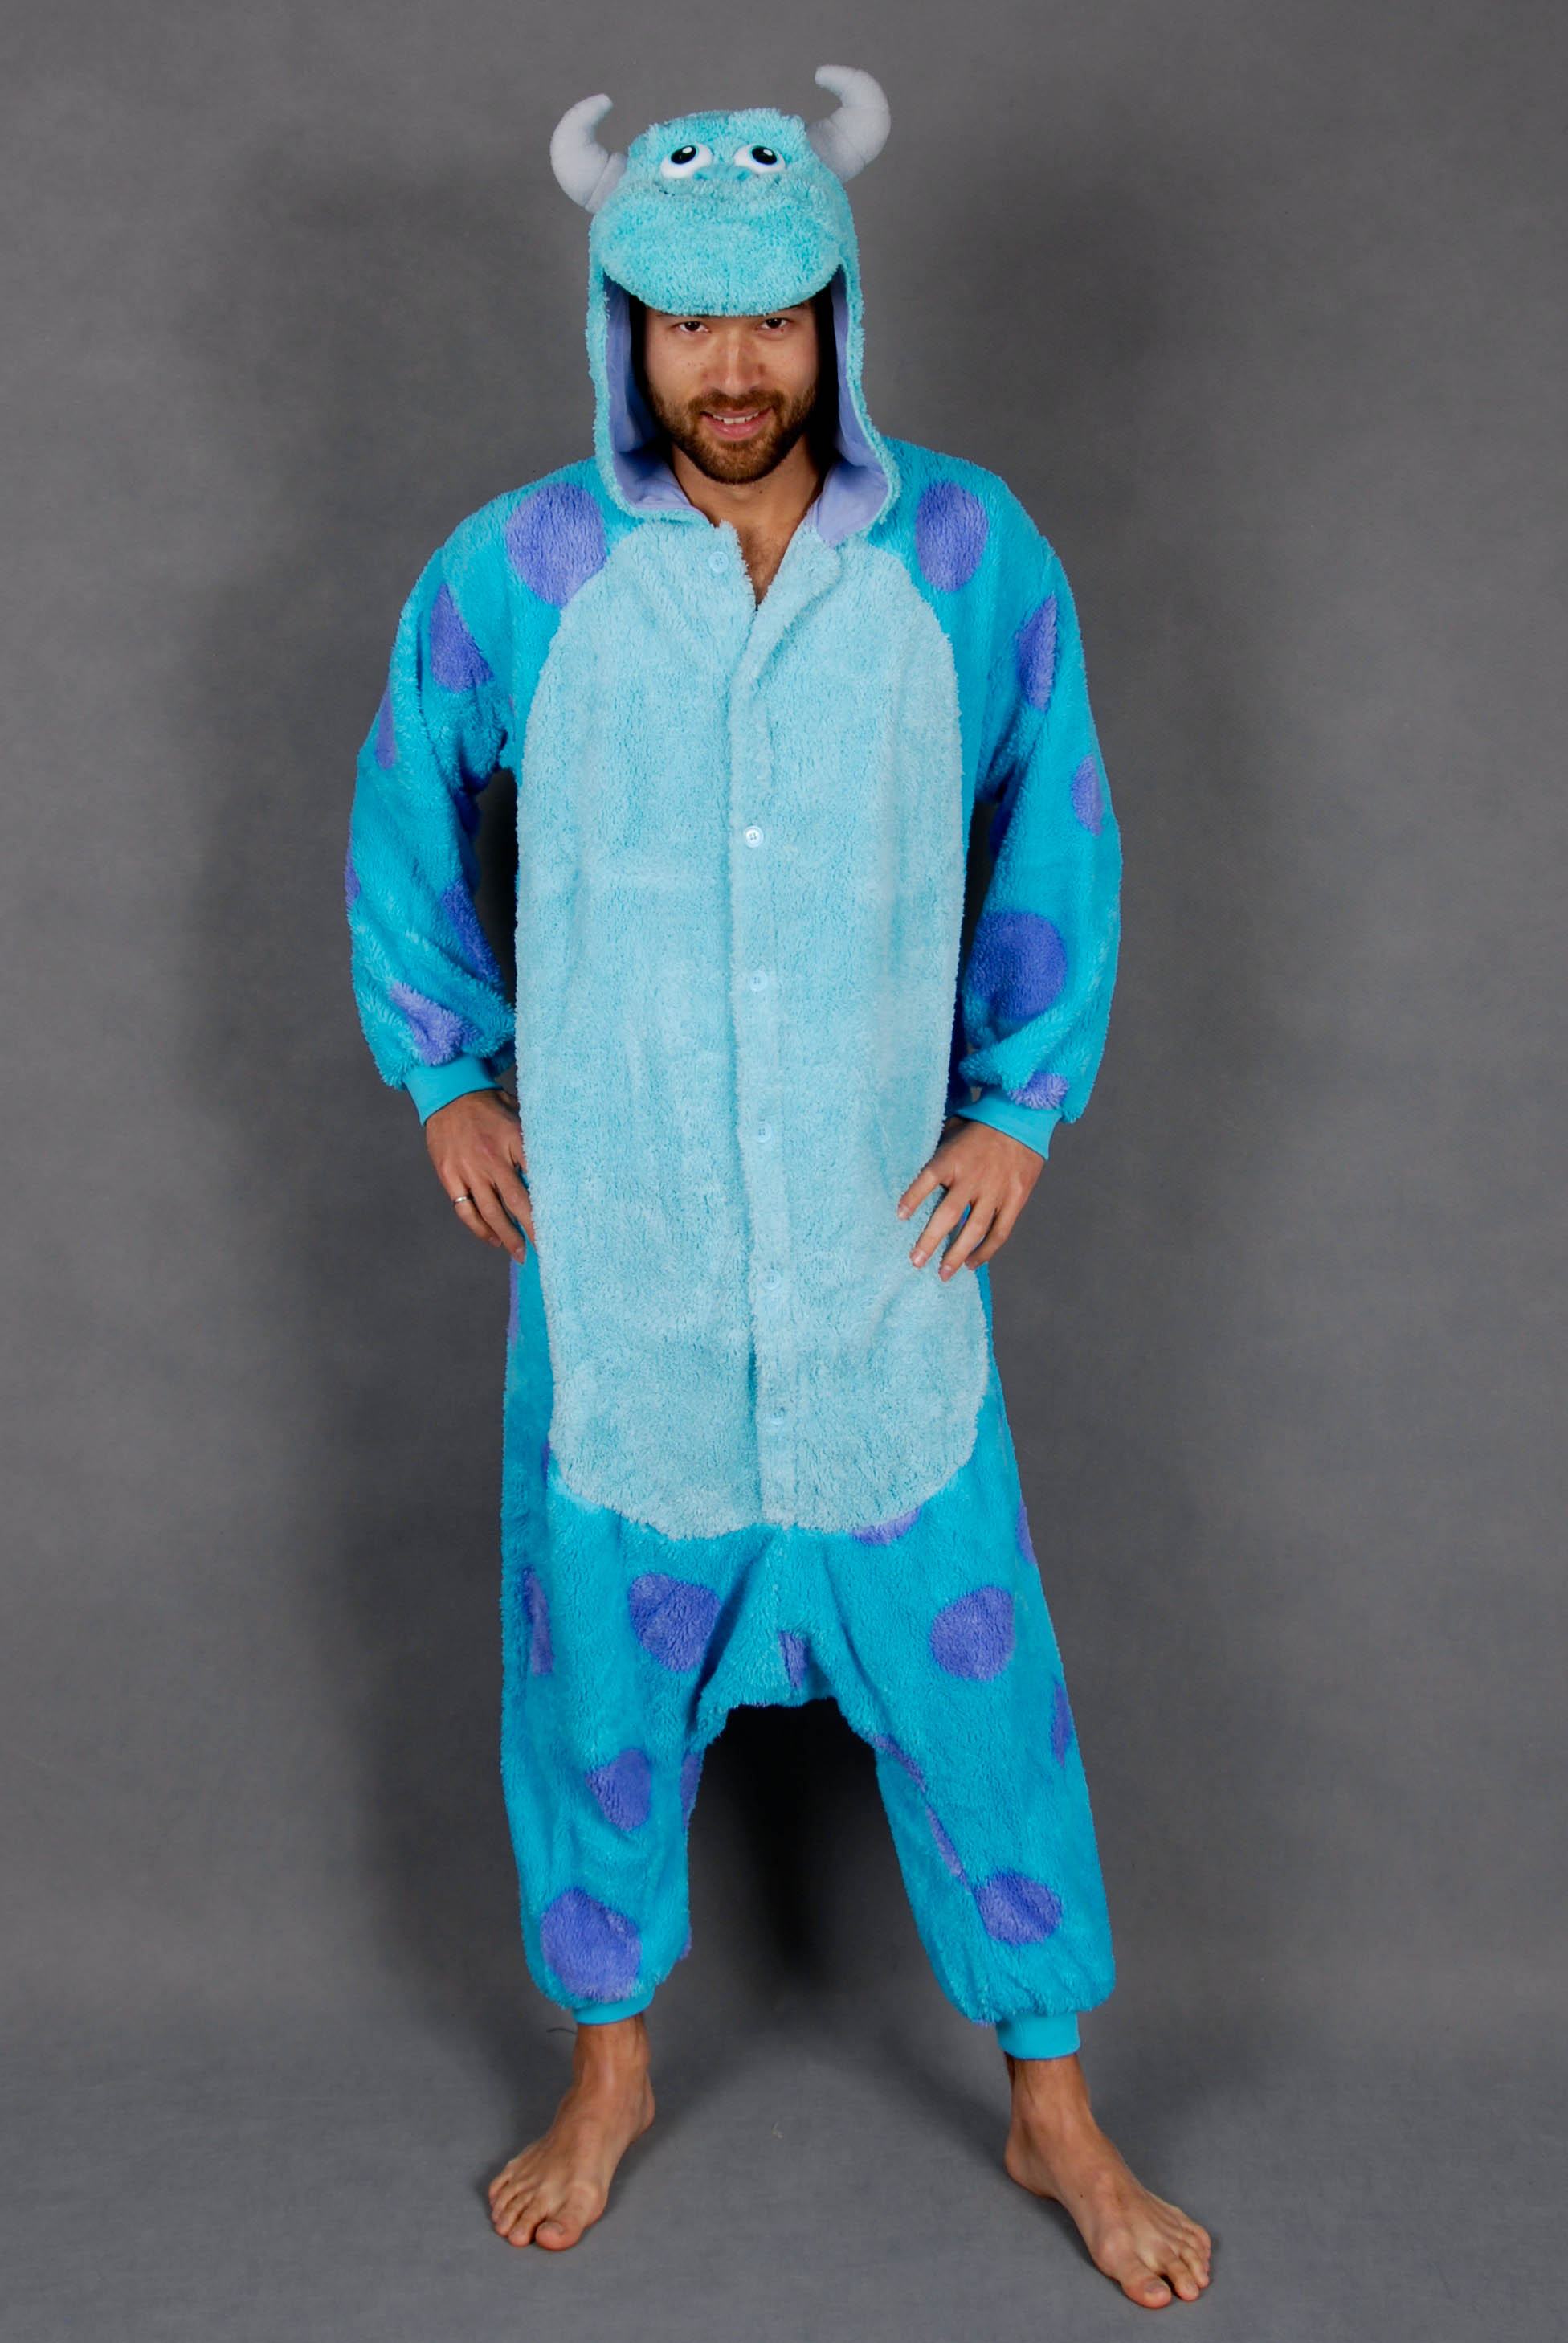 Buy Your Sulley Monsters Inc Onesie Now Partyinyouranimal Com